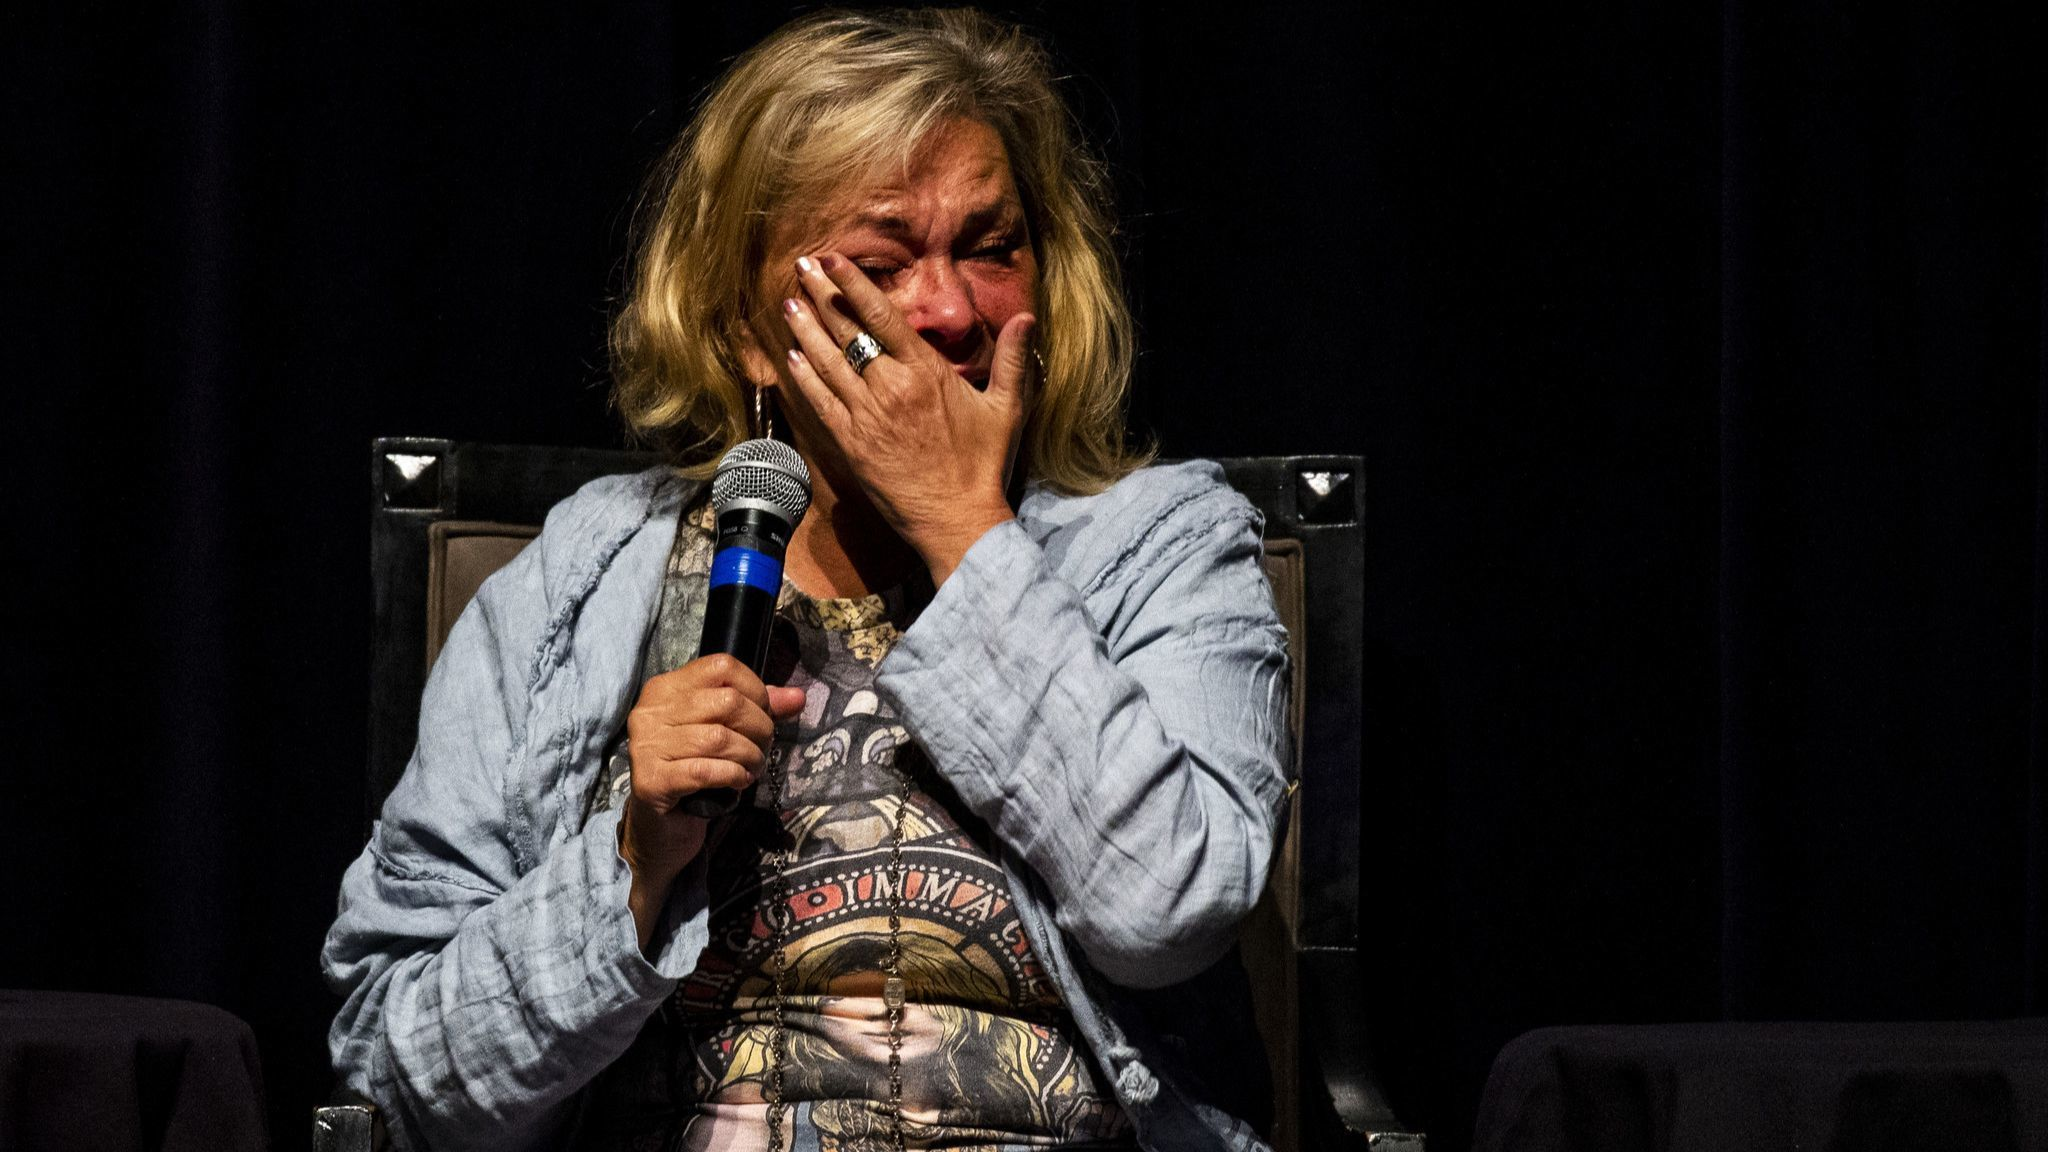 Roseanne Barr talks about apologies, forgiveness and her upcoming comedy tour during live Yom Kippur eve event